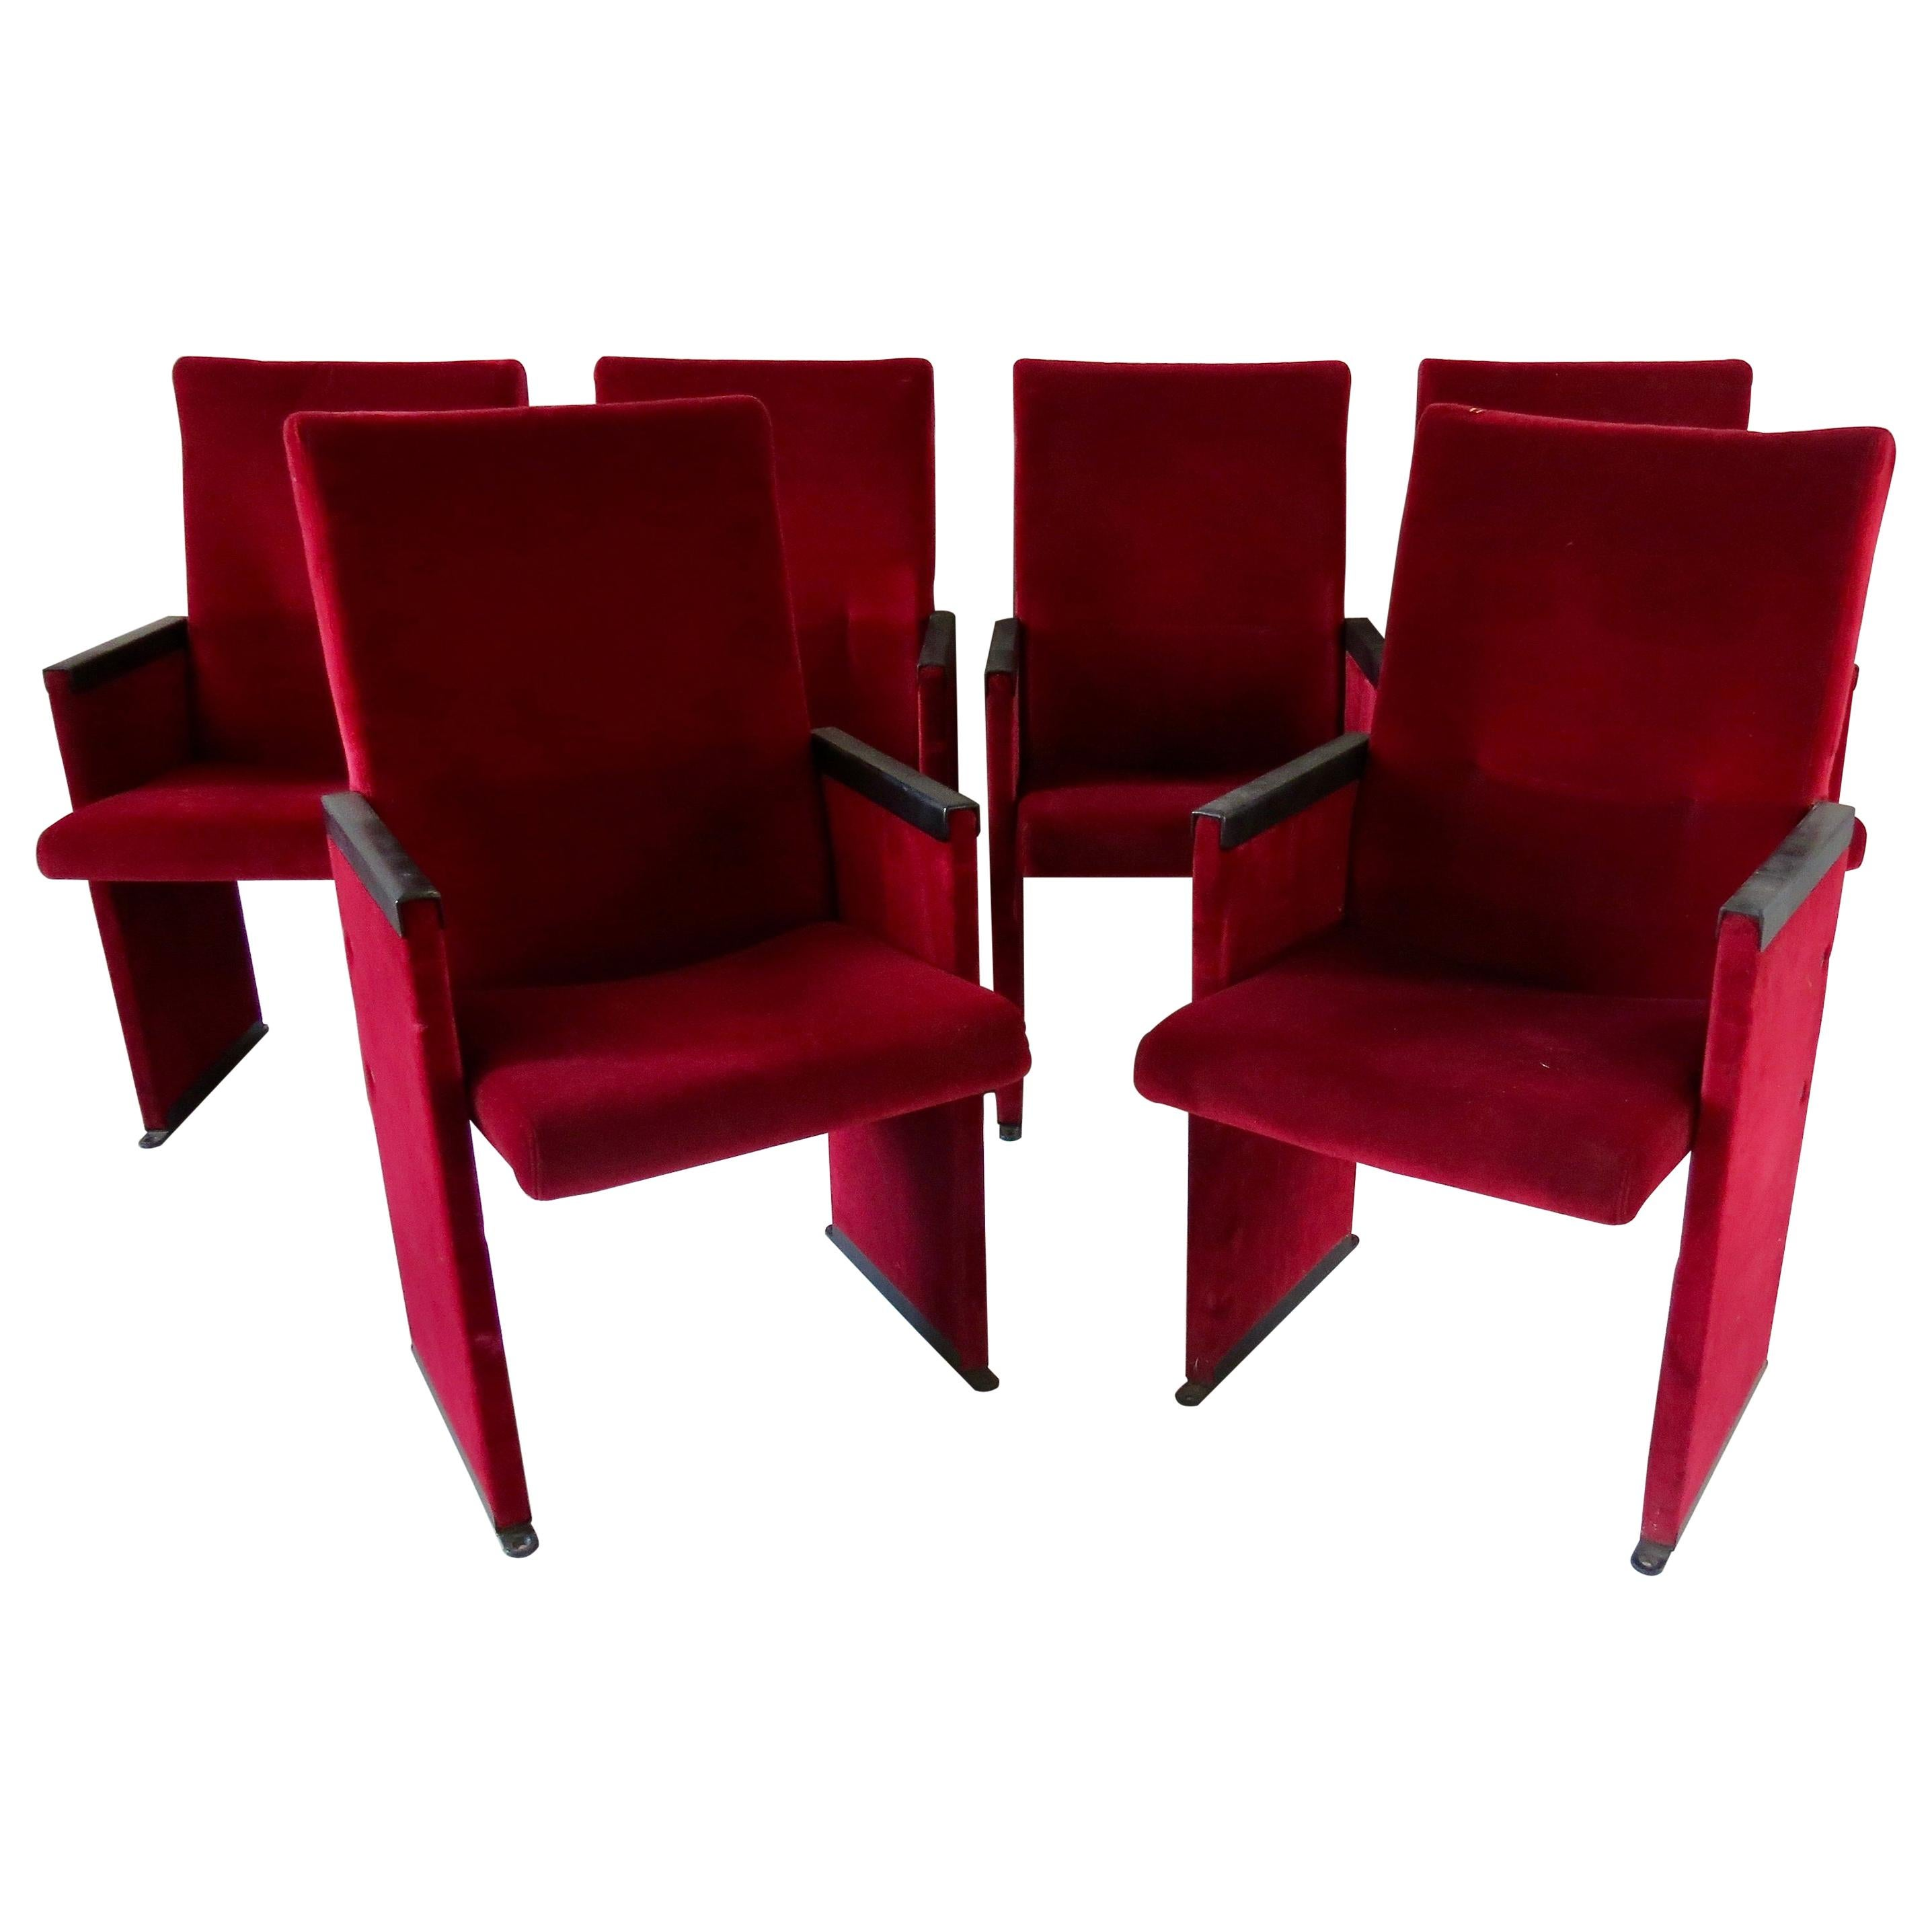 Set of 12 Red Velvet Carlo Scarpa Theatre Chairs, from the Auditorium Roma, 1960